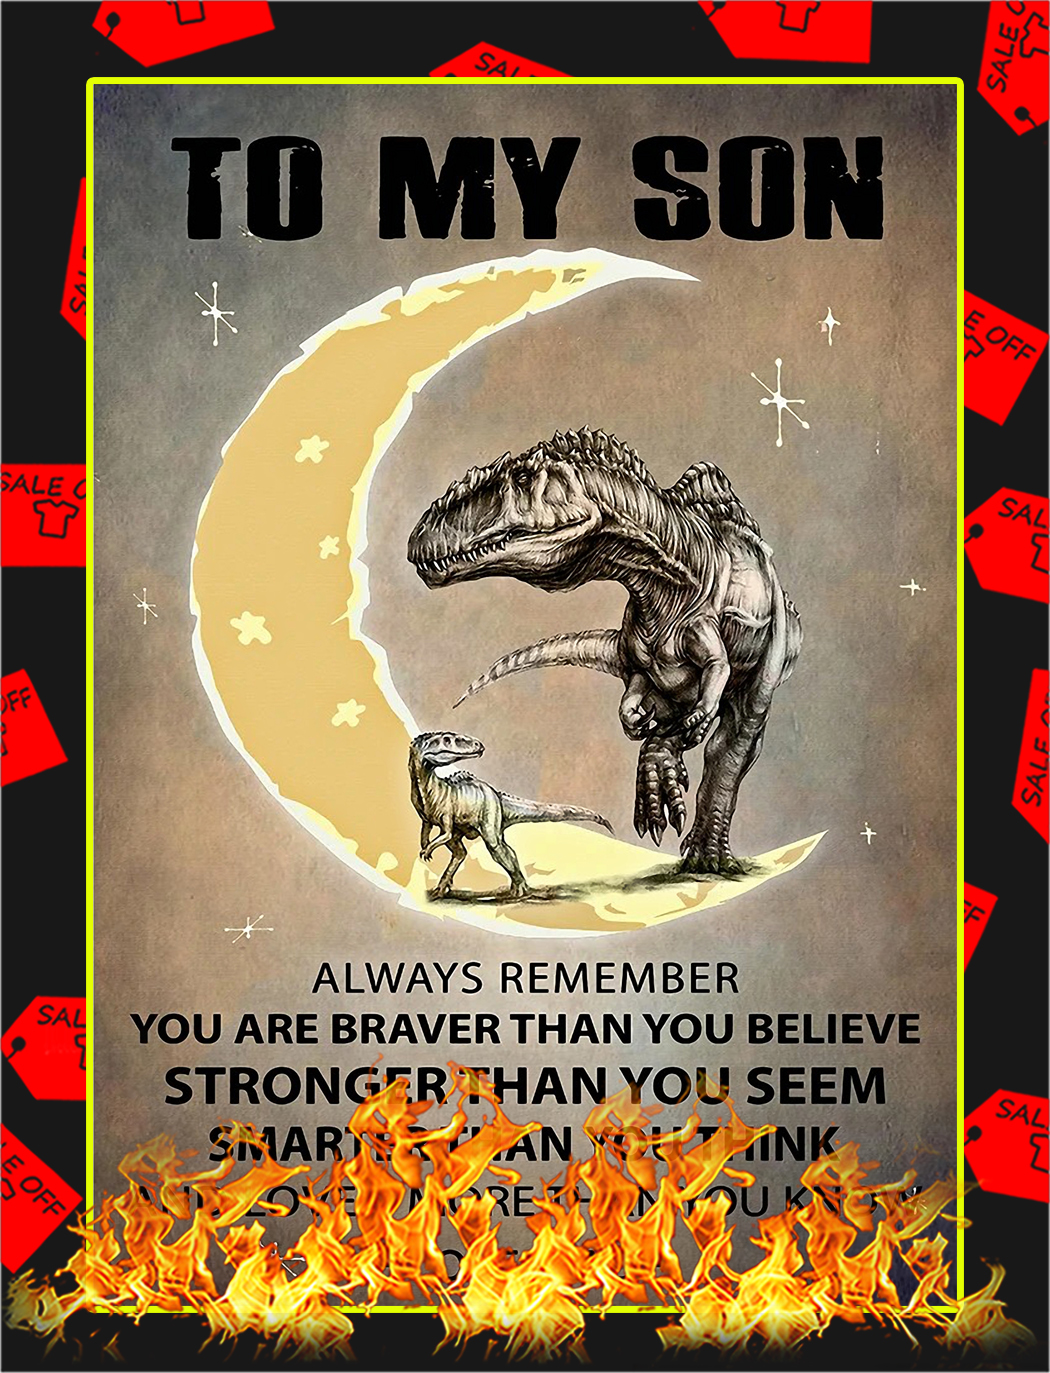 Dinosaur Dad to my son poster